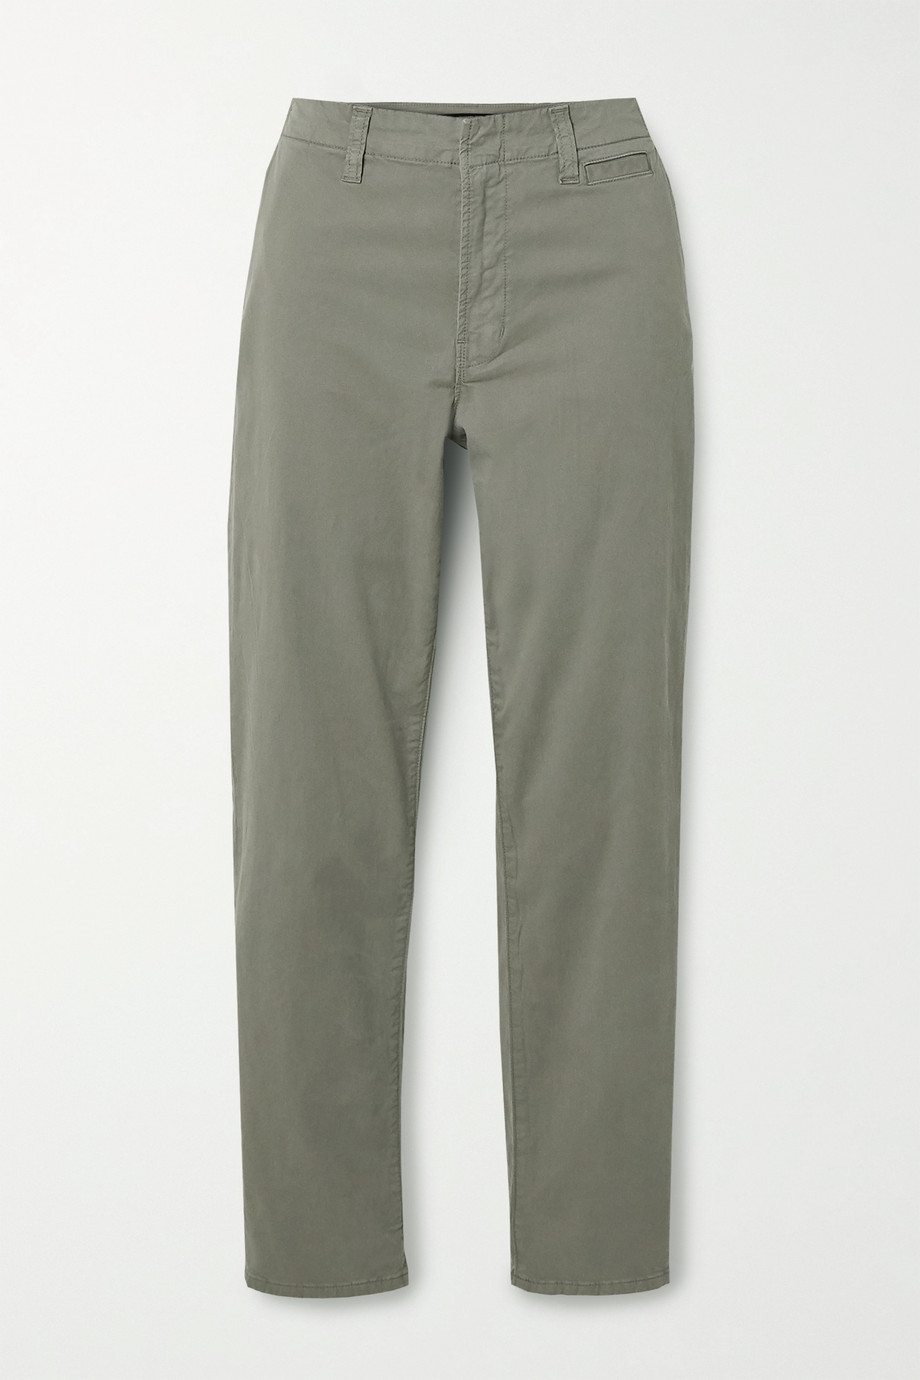 J Brand Ollie cotton-blend twill pants